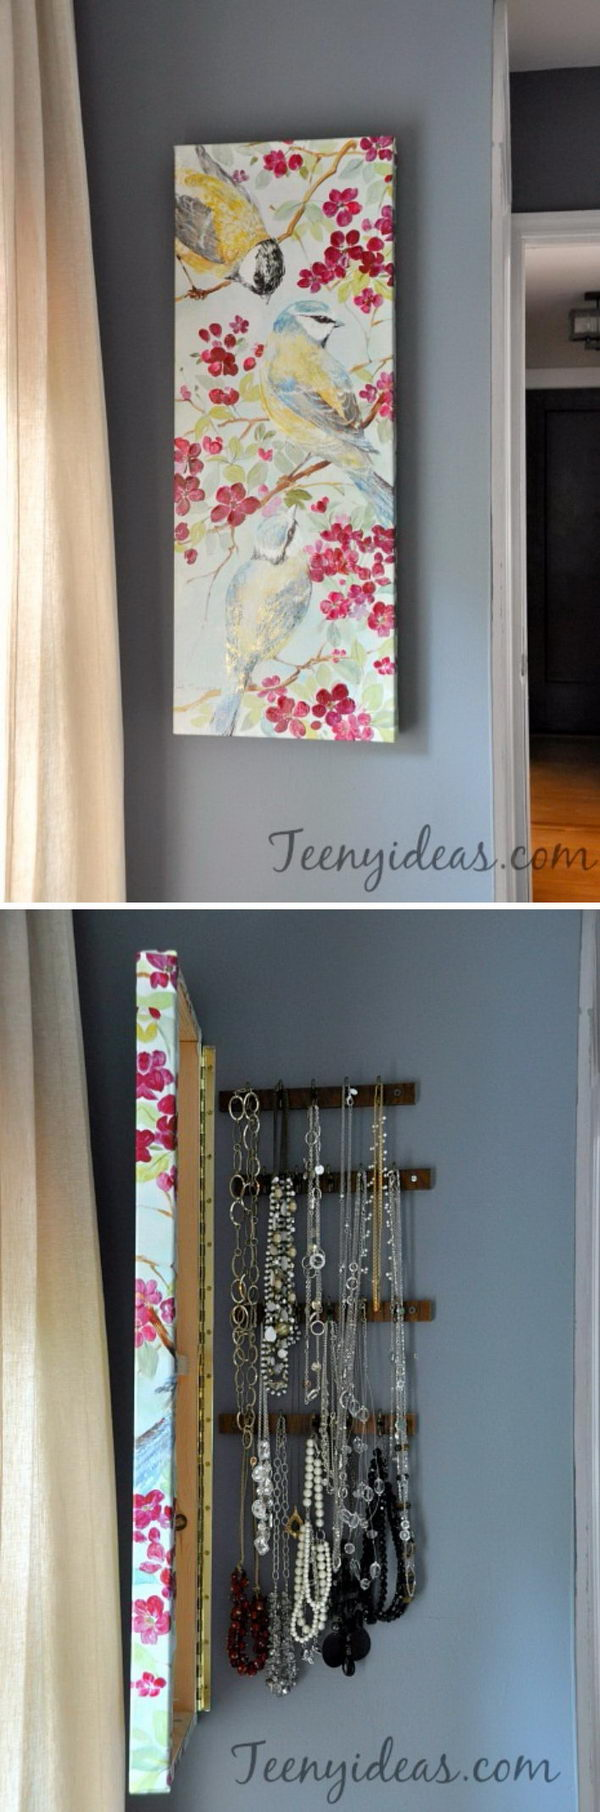 DIY Wall Canvas with Hidden Jewelry Storage.